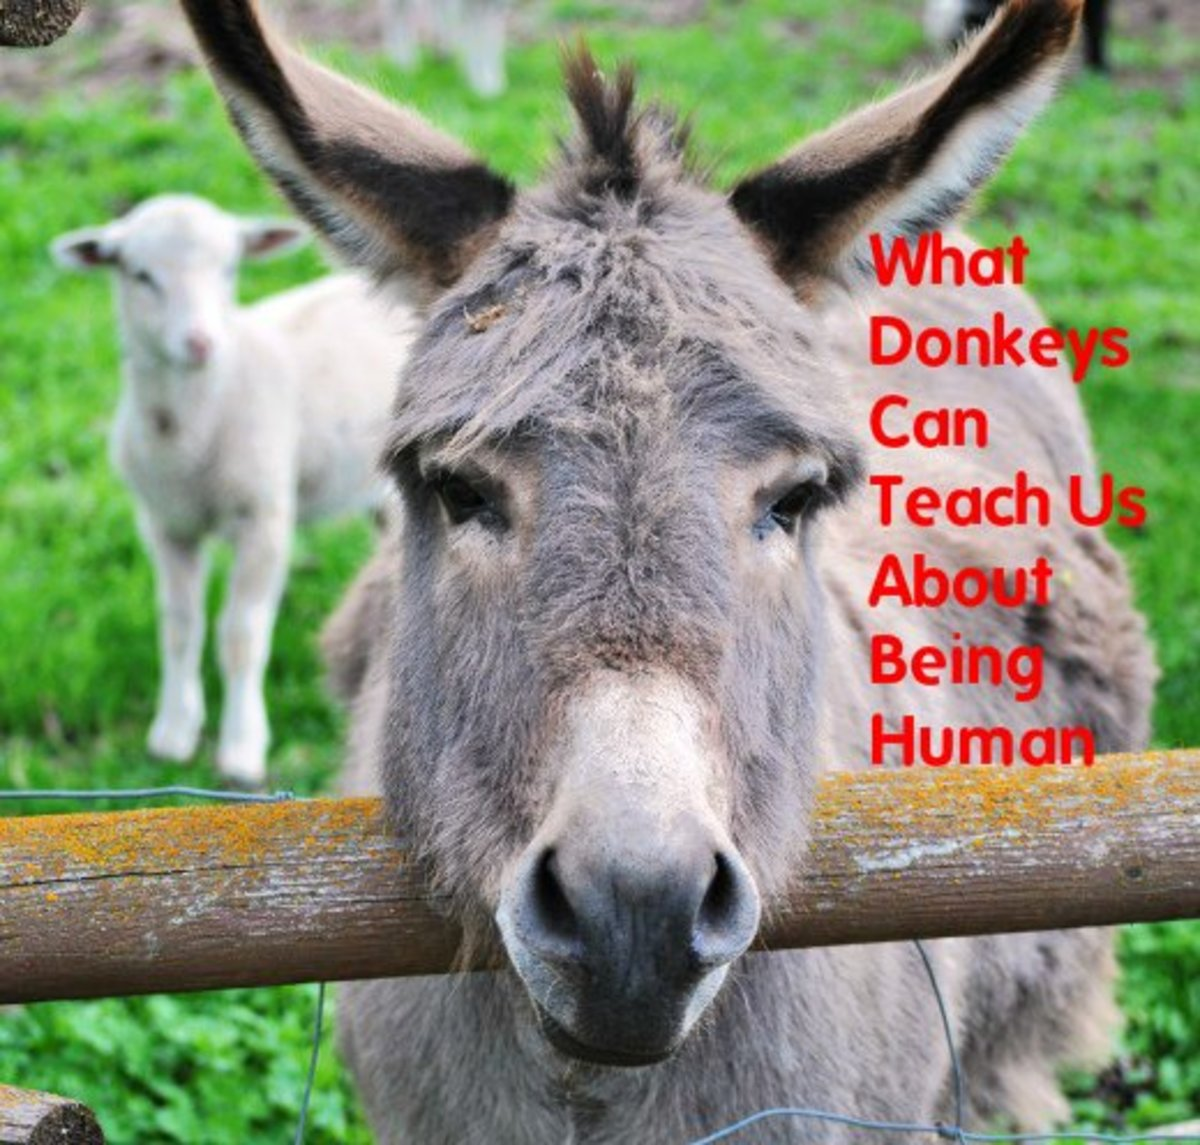 What Donkeys Can Teach Us About Being Human